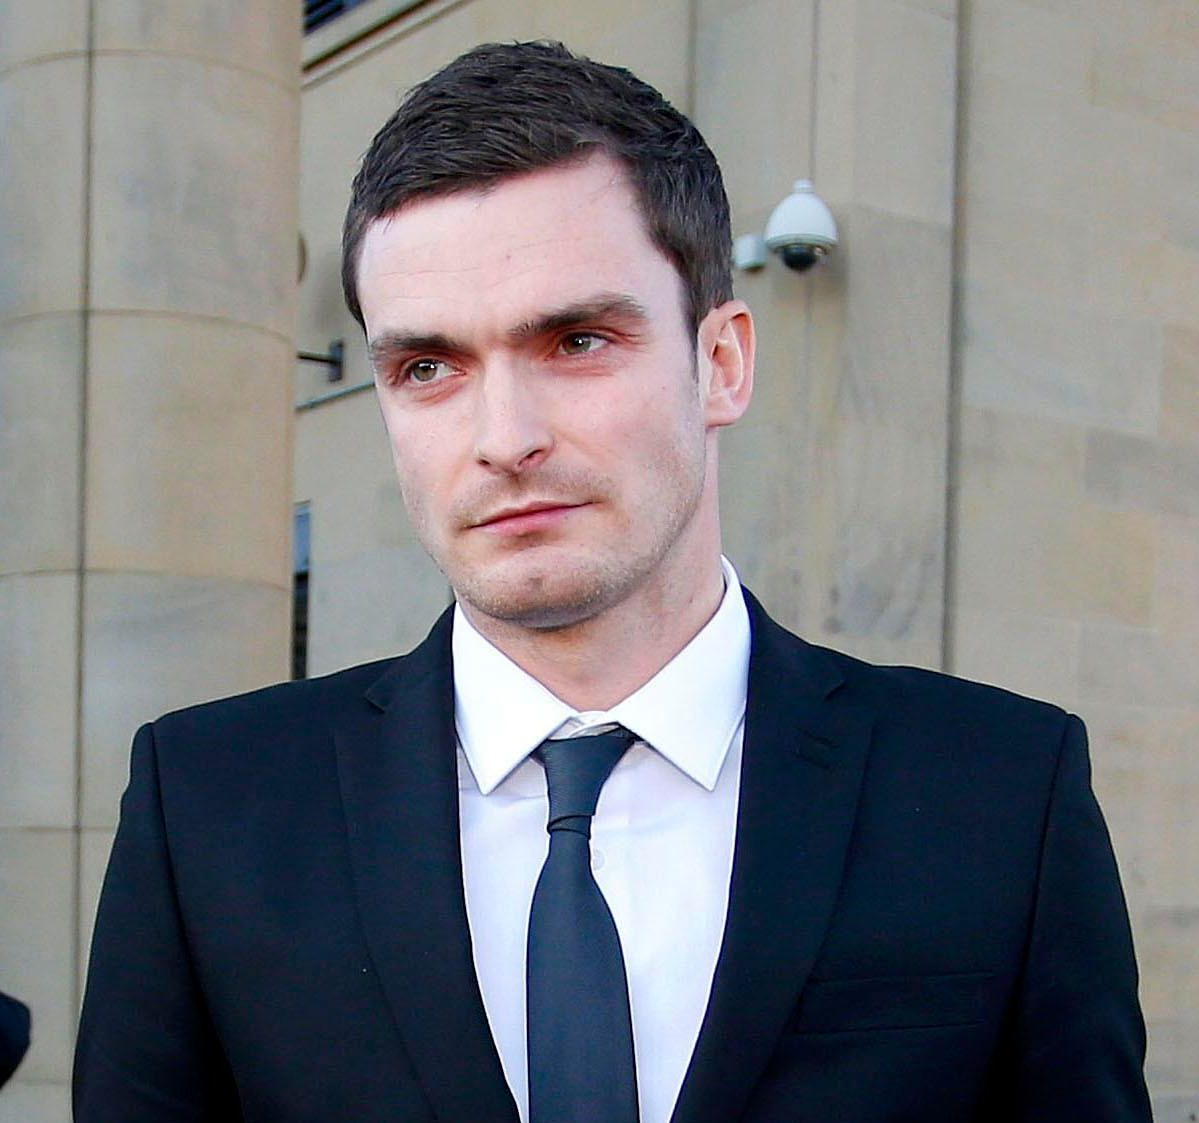 Adam Johnson hopes to return to football on his release